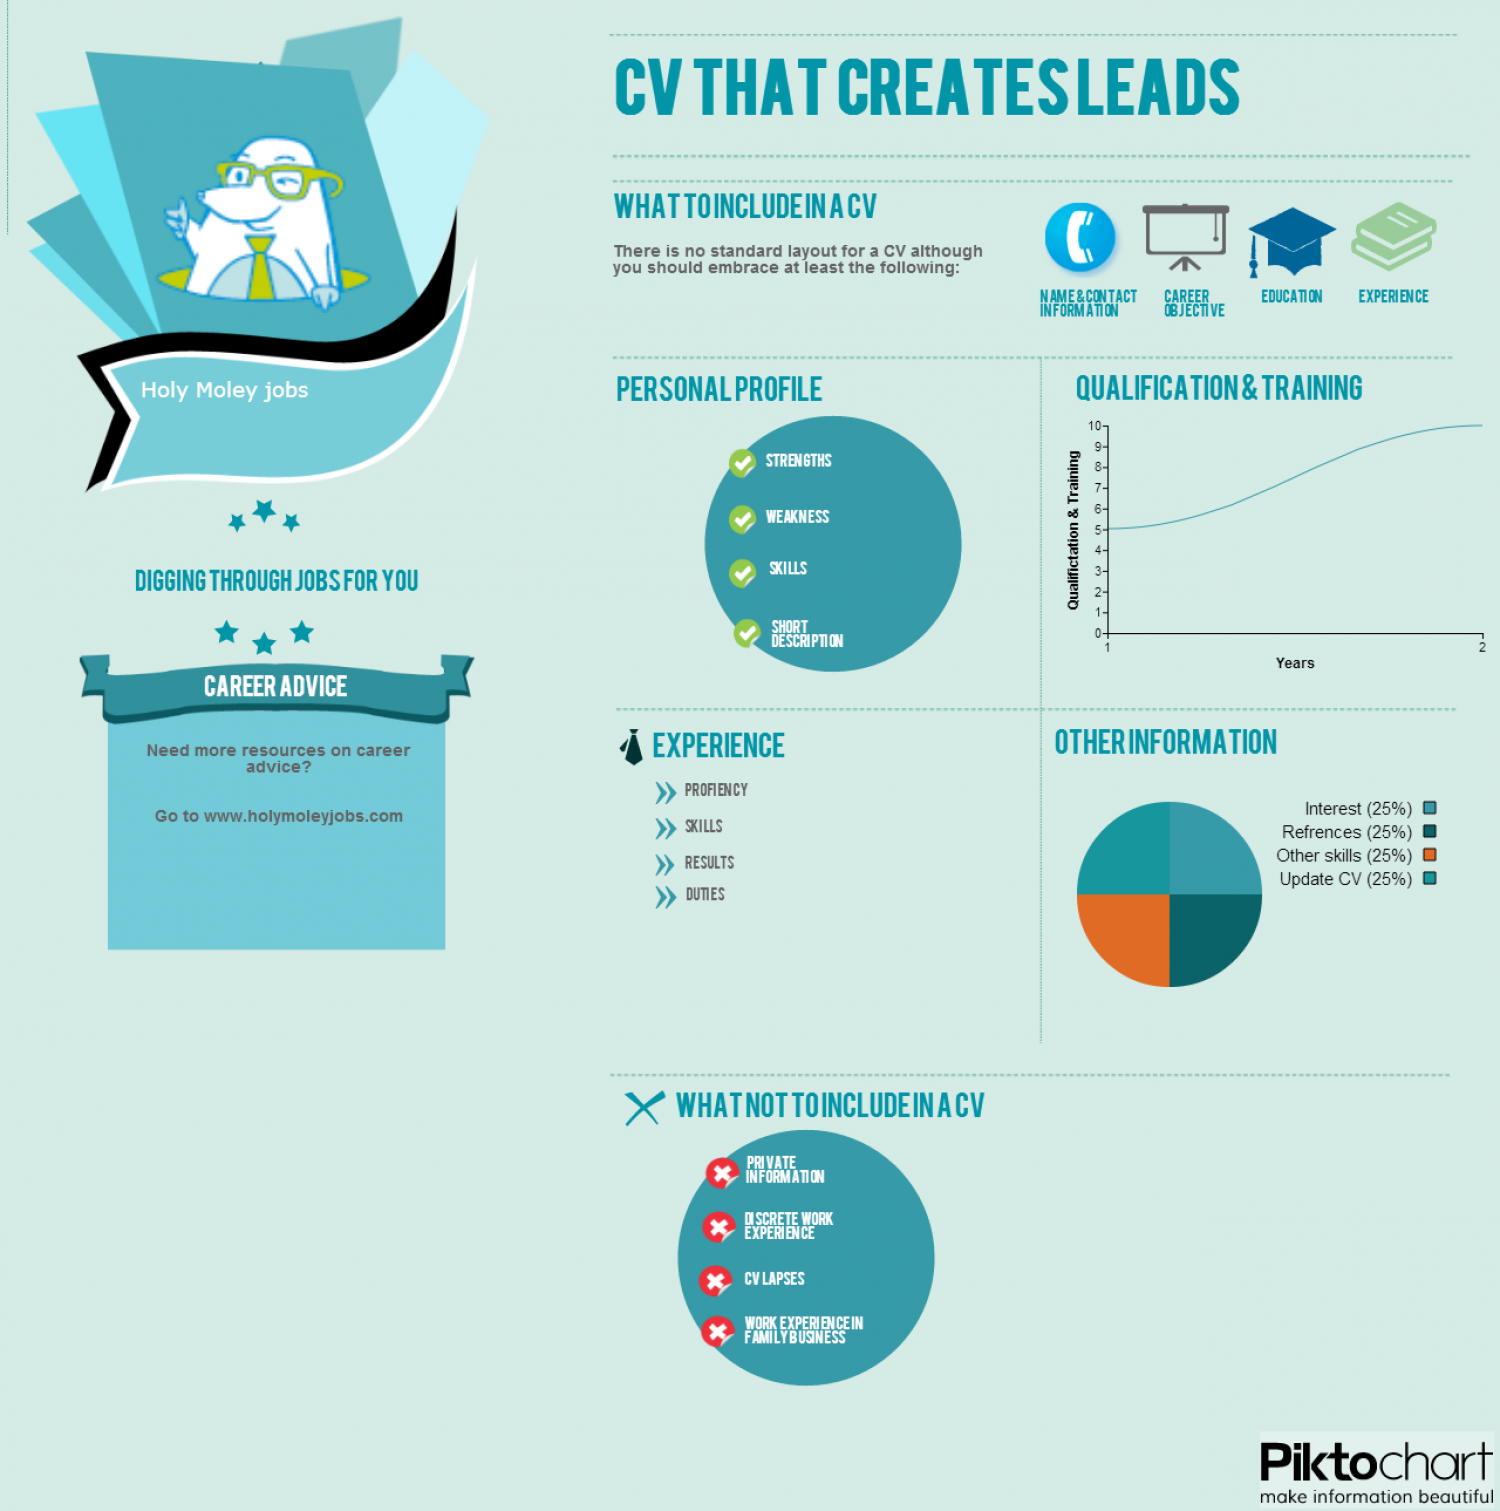 what to include in a CV Infographic